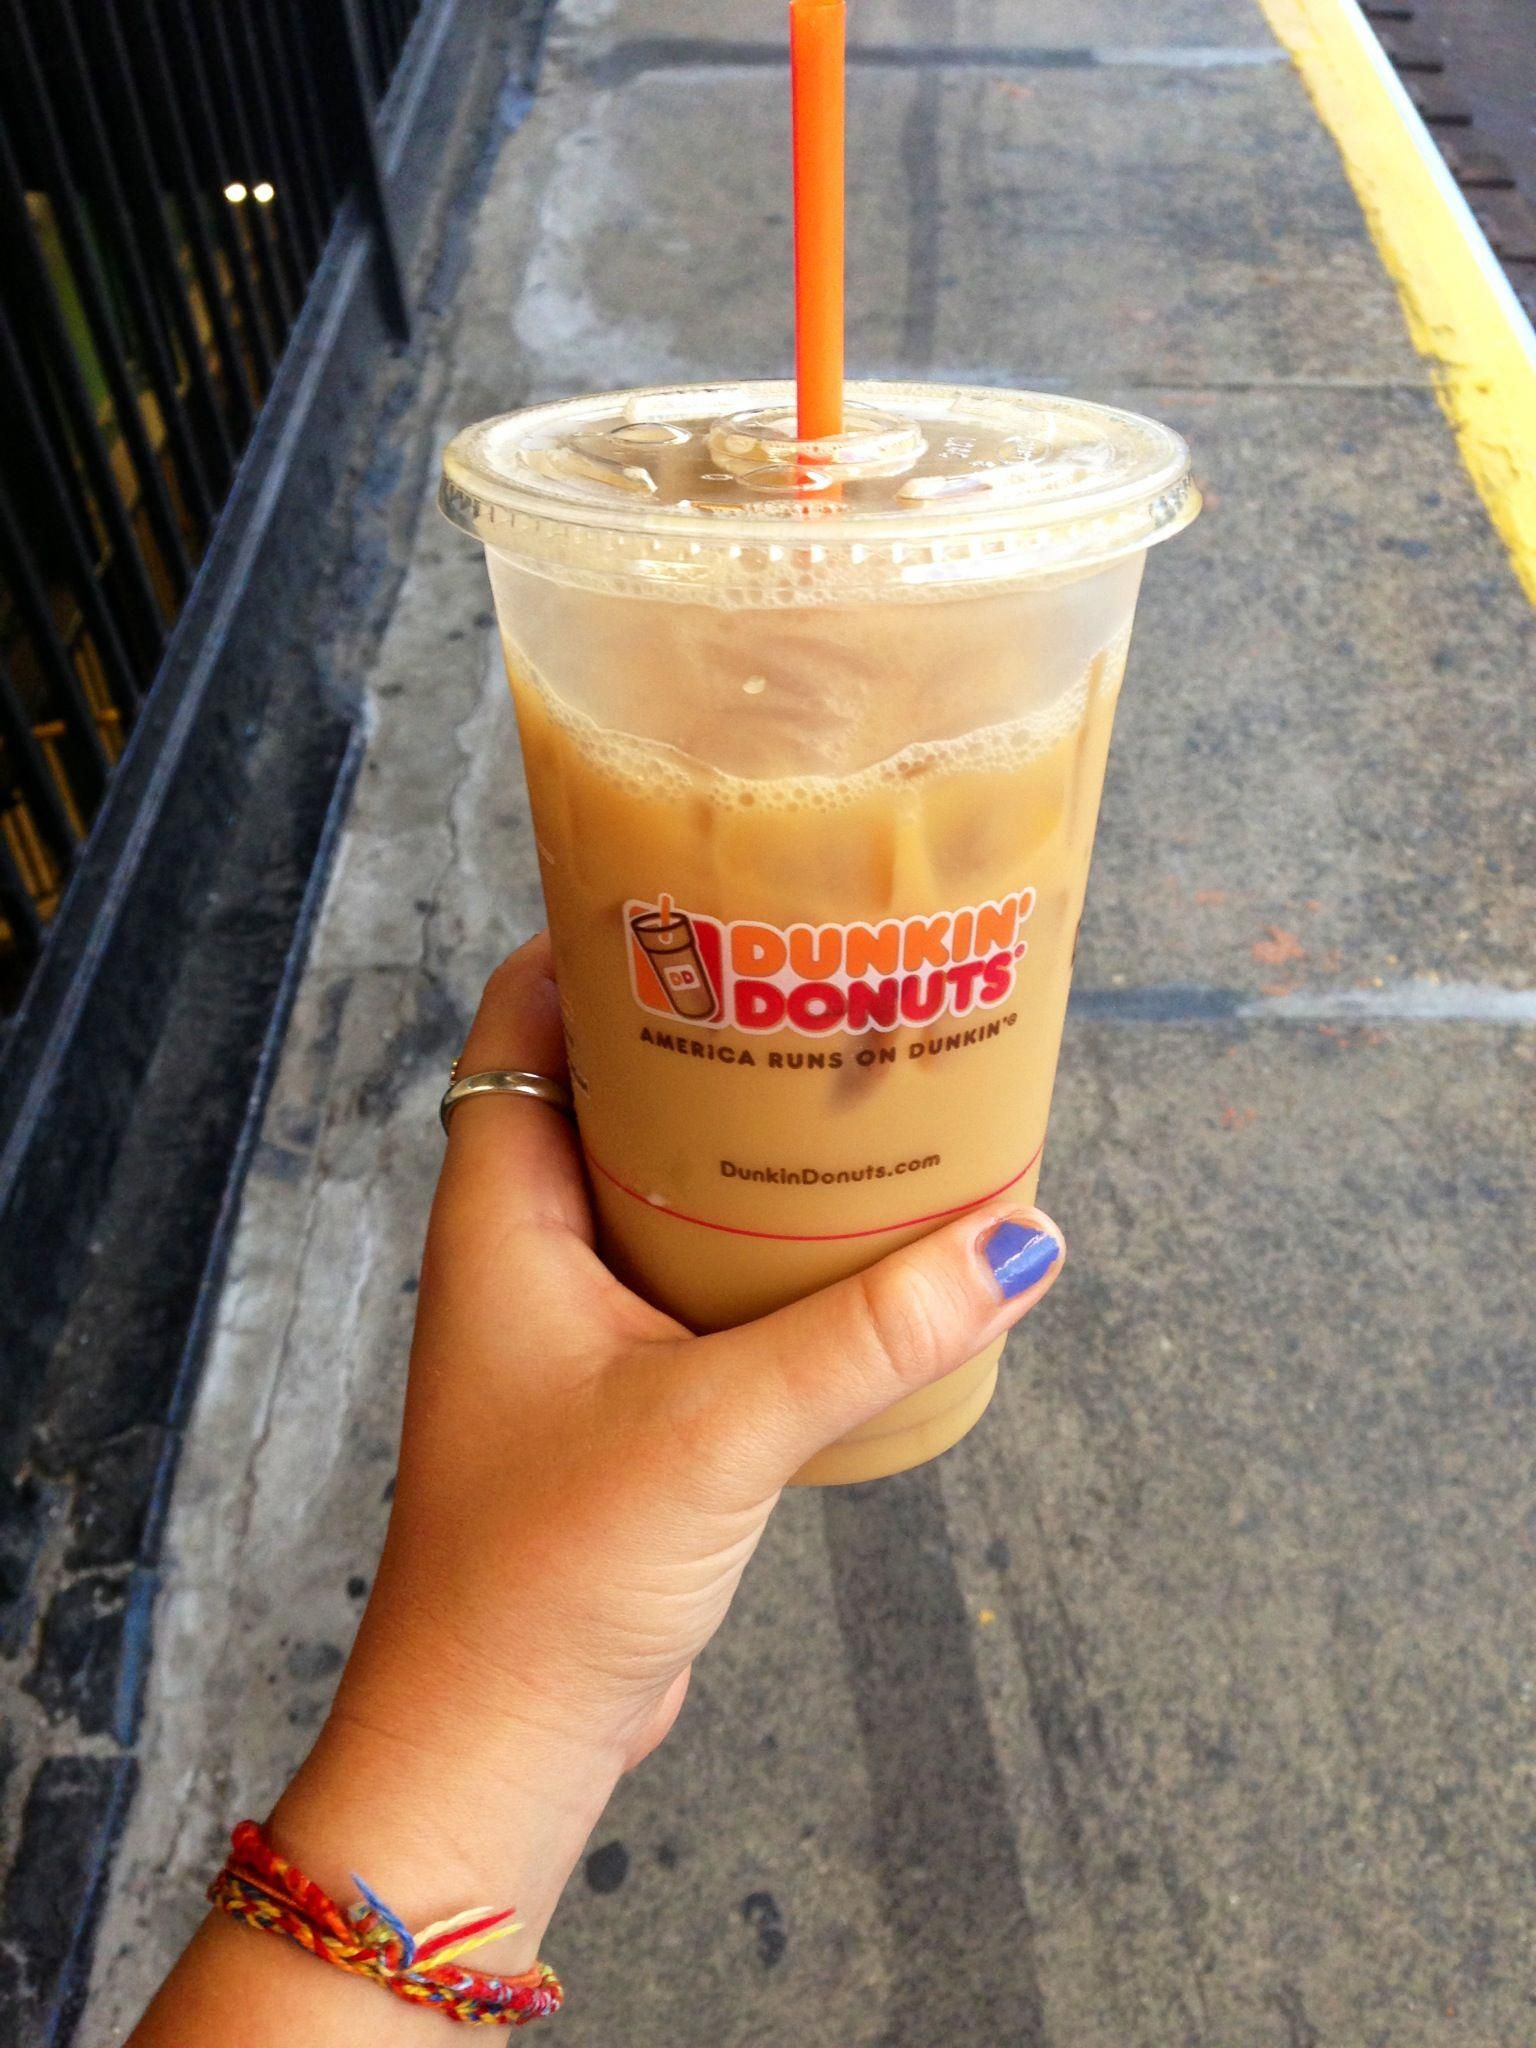 Dunkin donuts iced coffee so delicious the thought of it